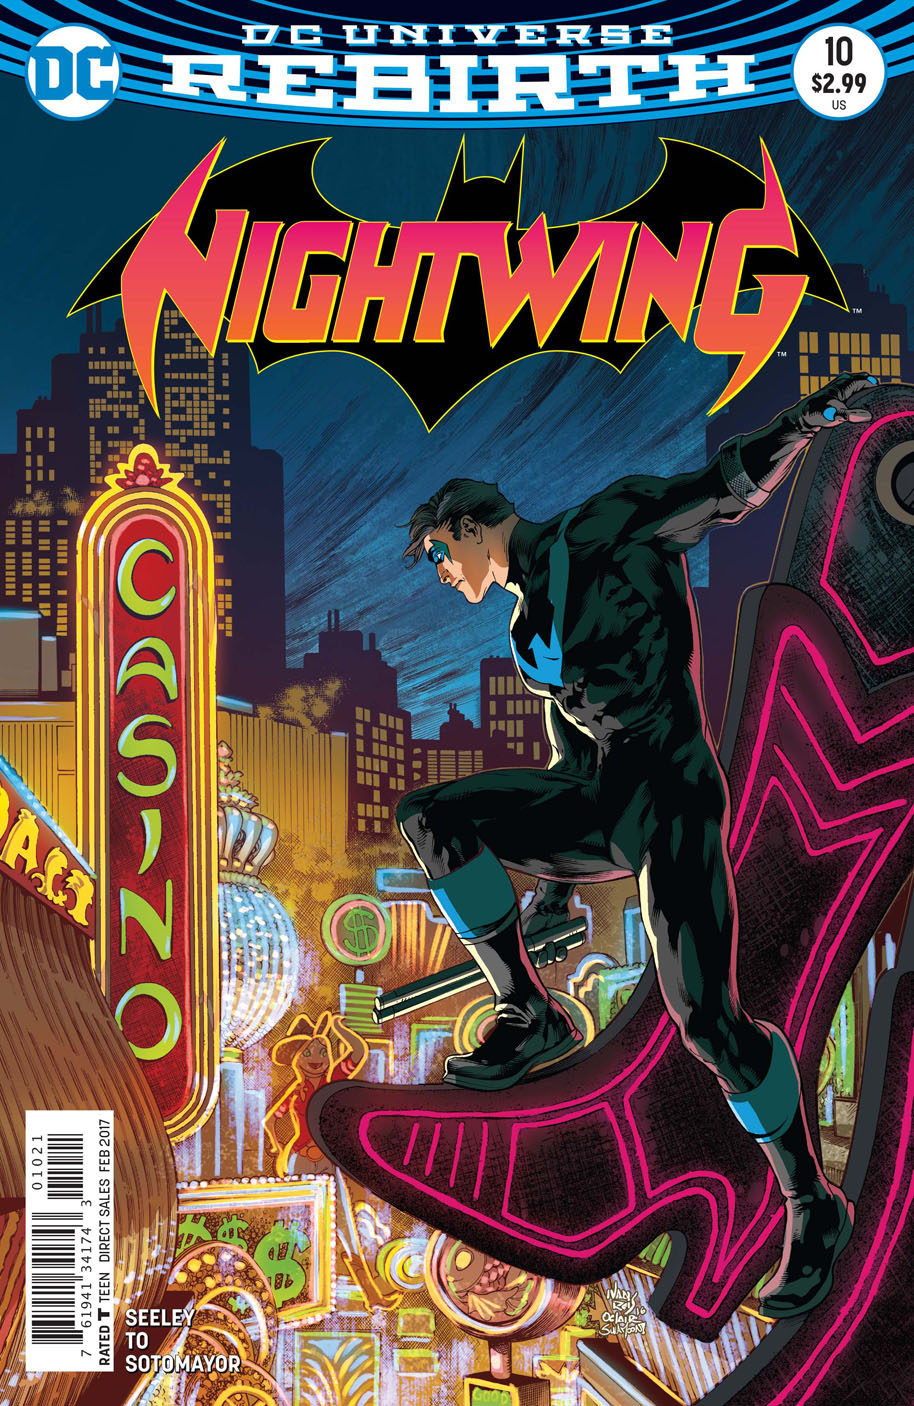 Nightwing 10 open order variant cover